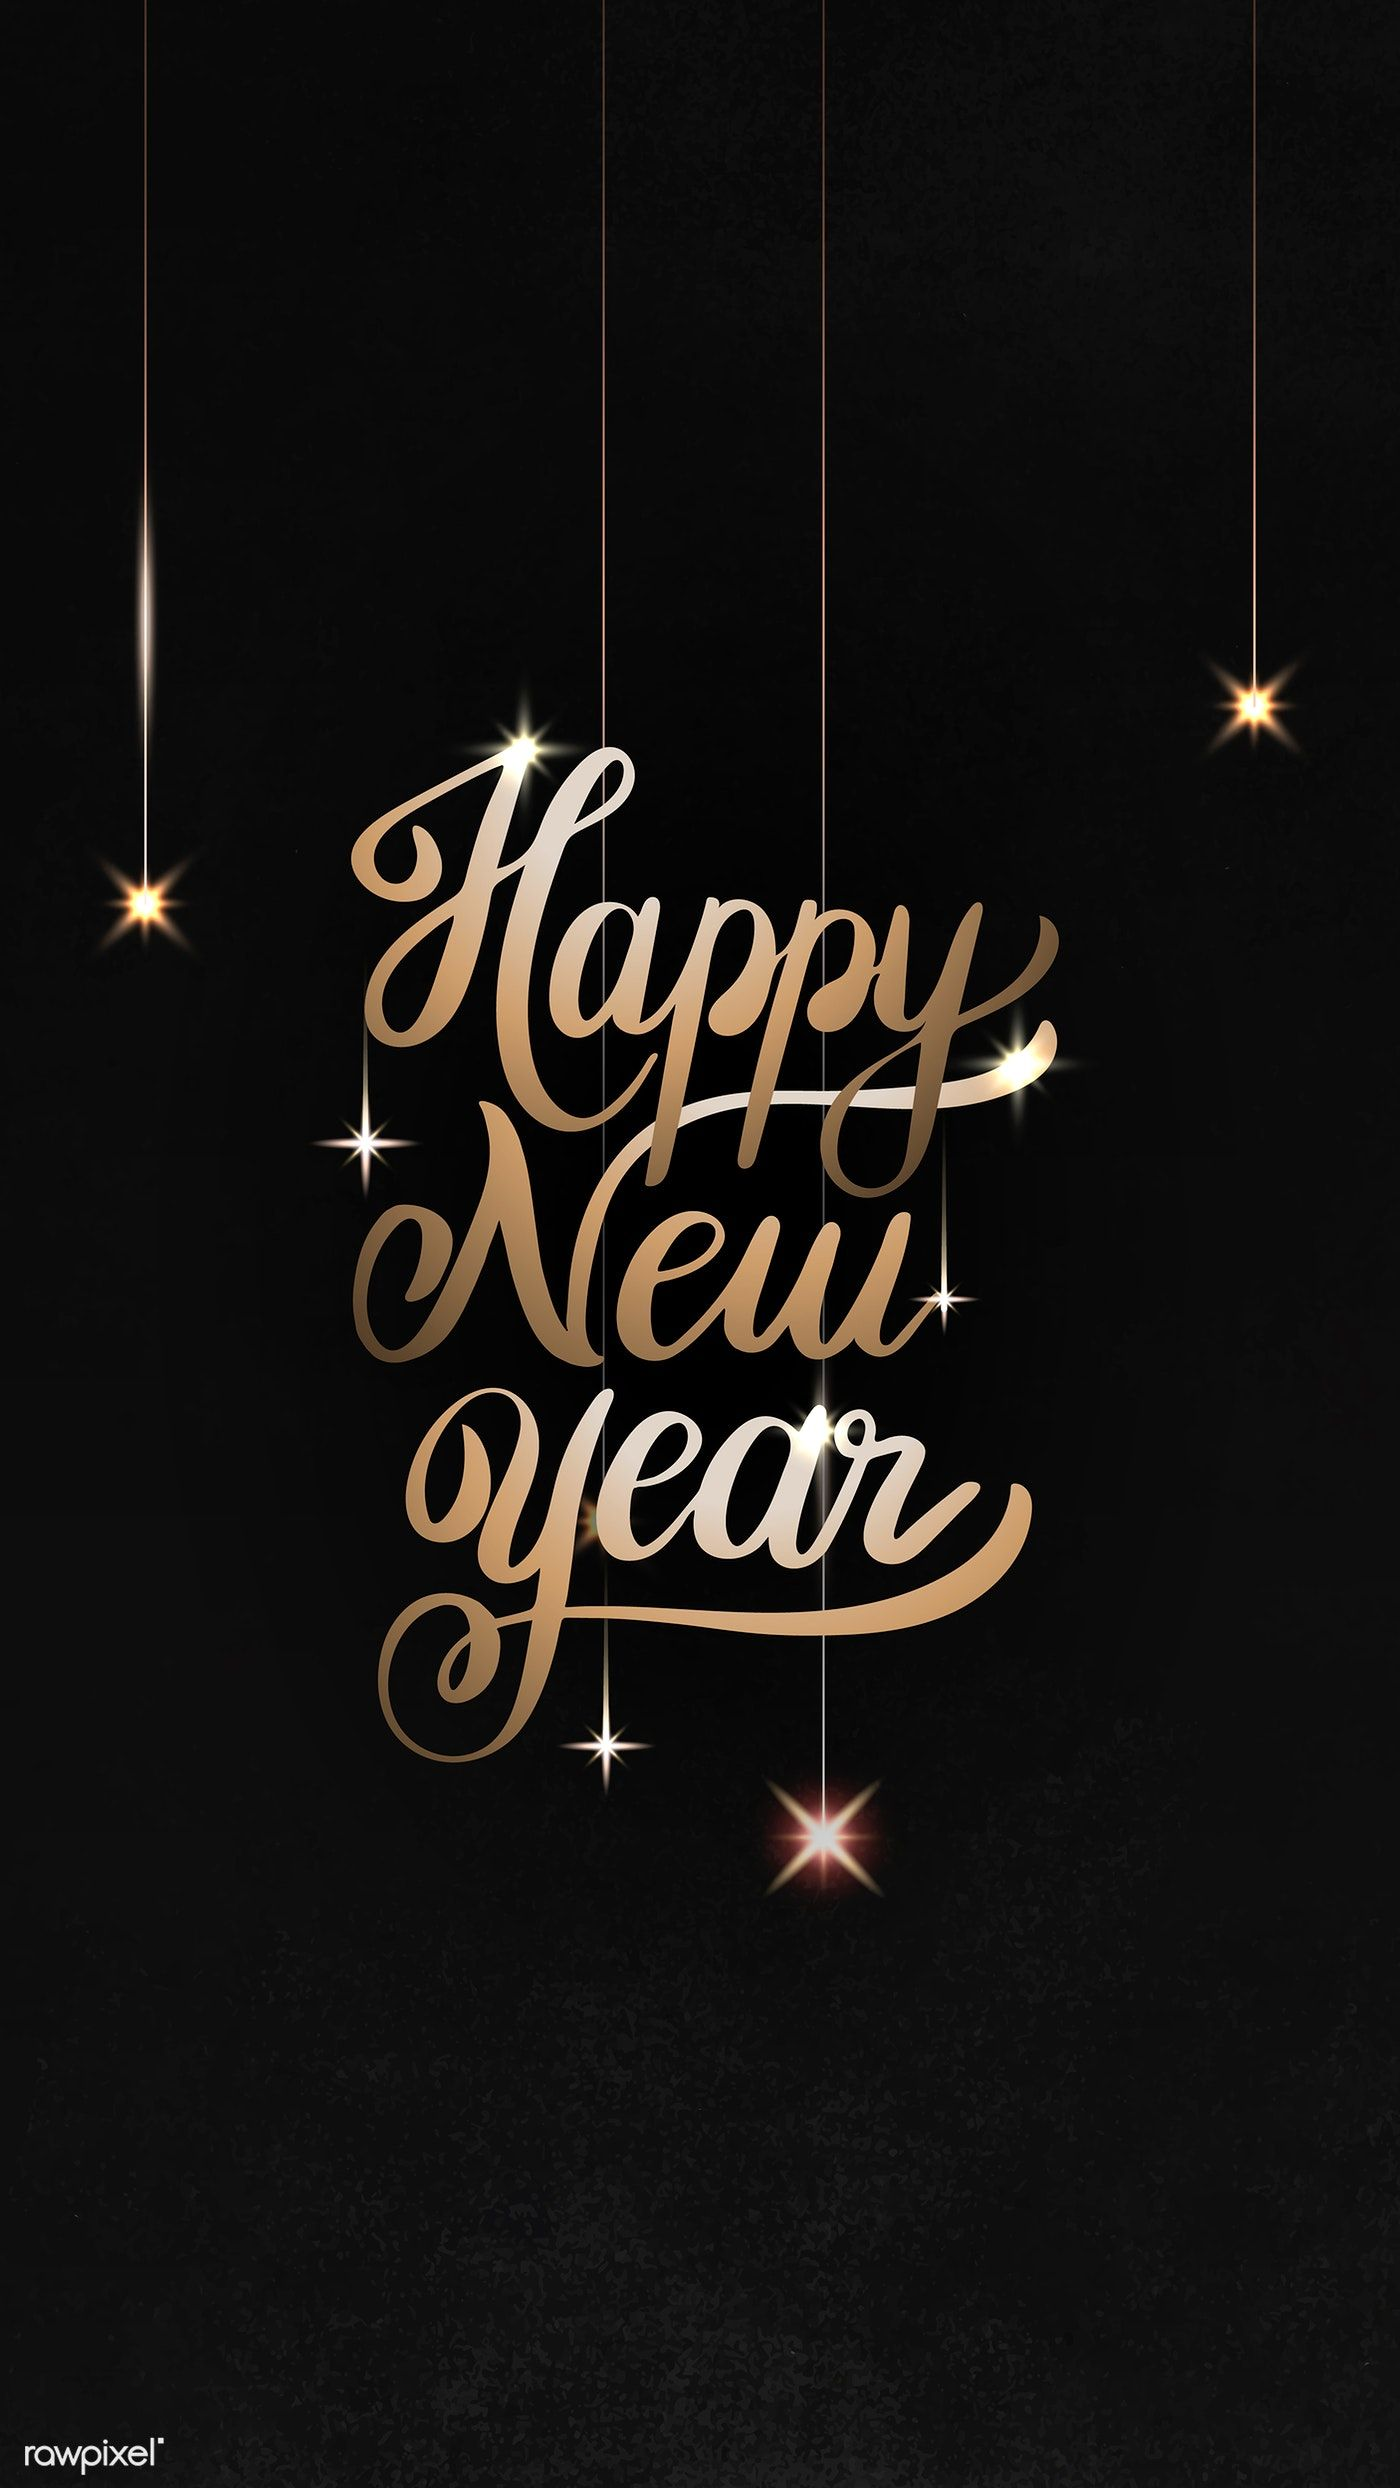 Download Premium Vector Of Happy New Year Black Greeting Card Template Happy New Year Greetings Happy New Year Images New Year Wishes